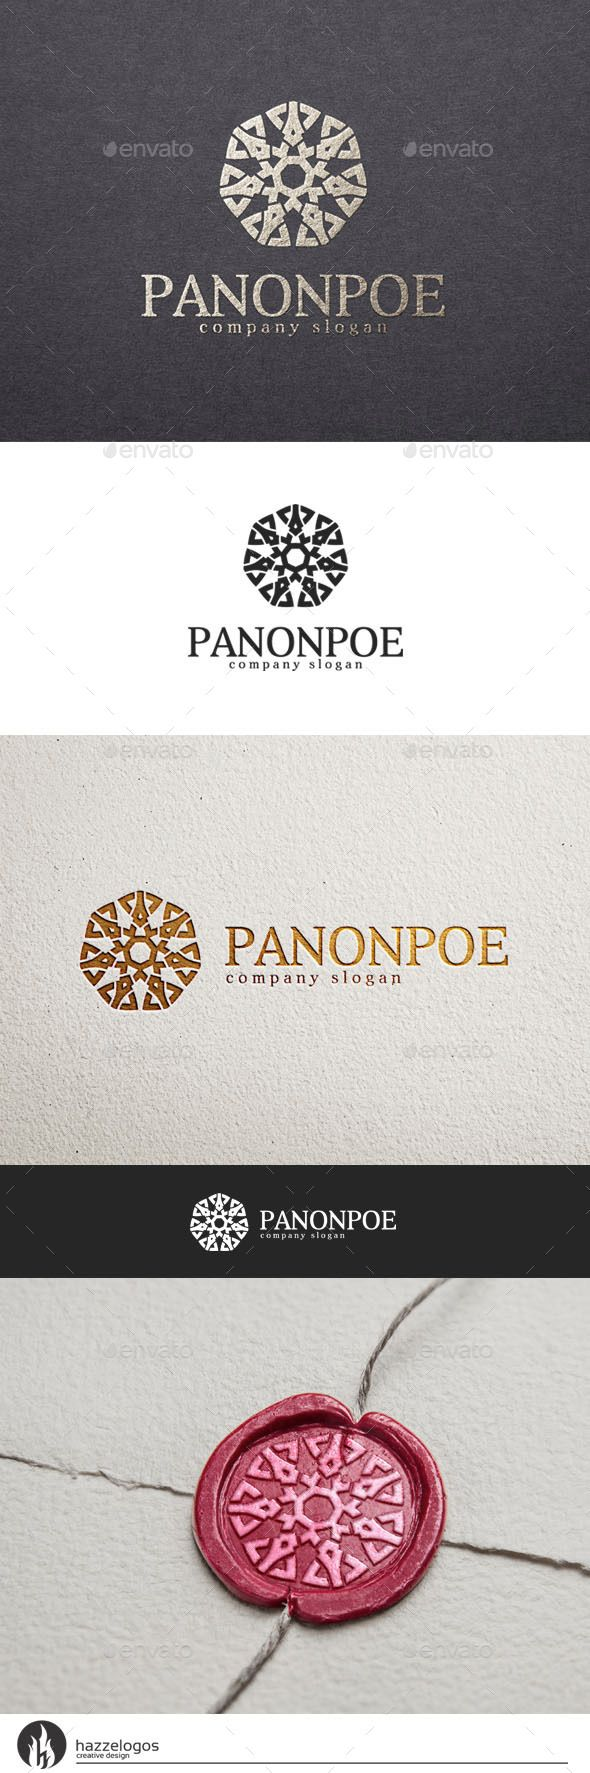 Panonpoe Logo Template #design #logotype Download: http://graphicriver.net/item/panonpoe-logo/10550388?ref=ksioks